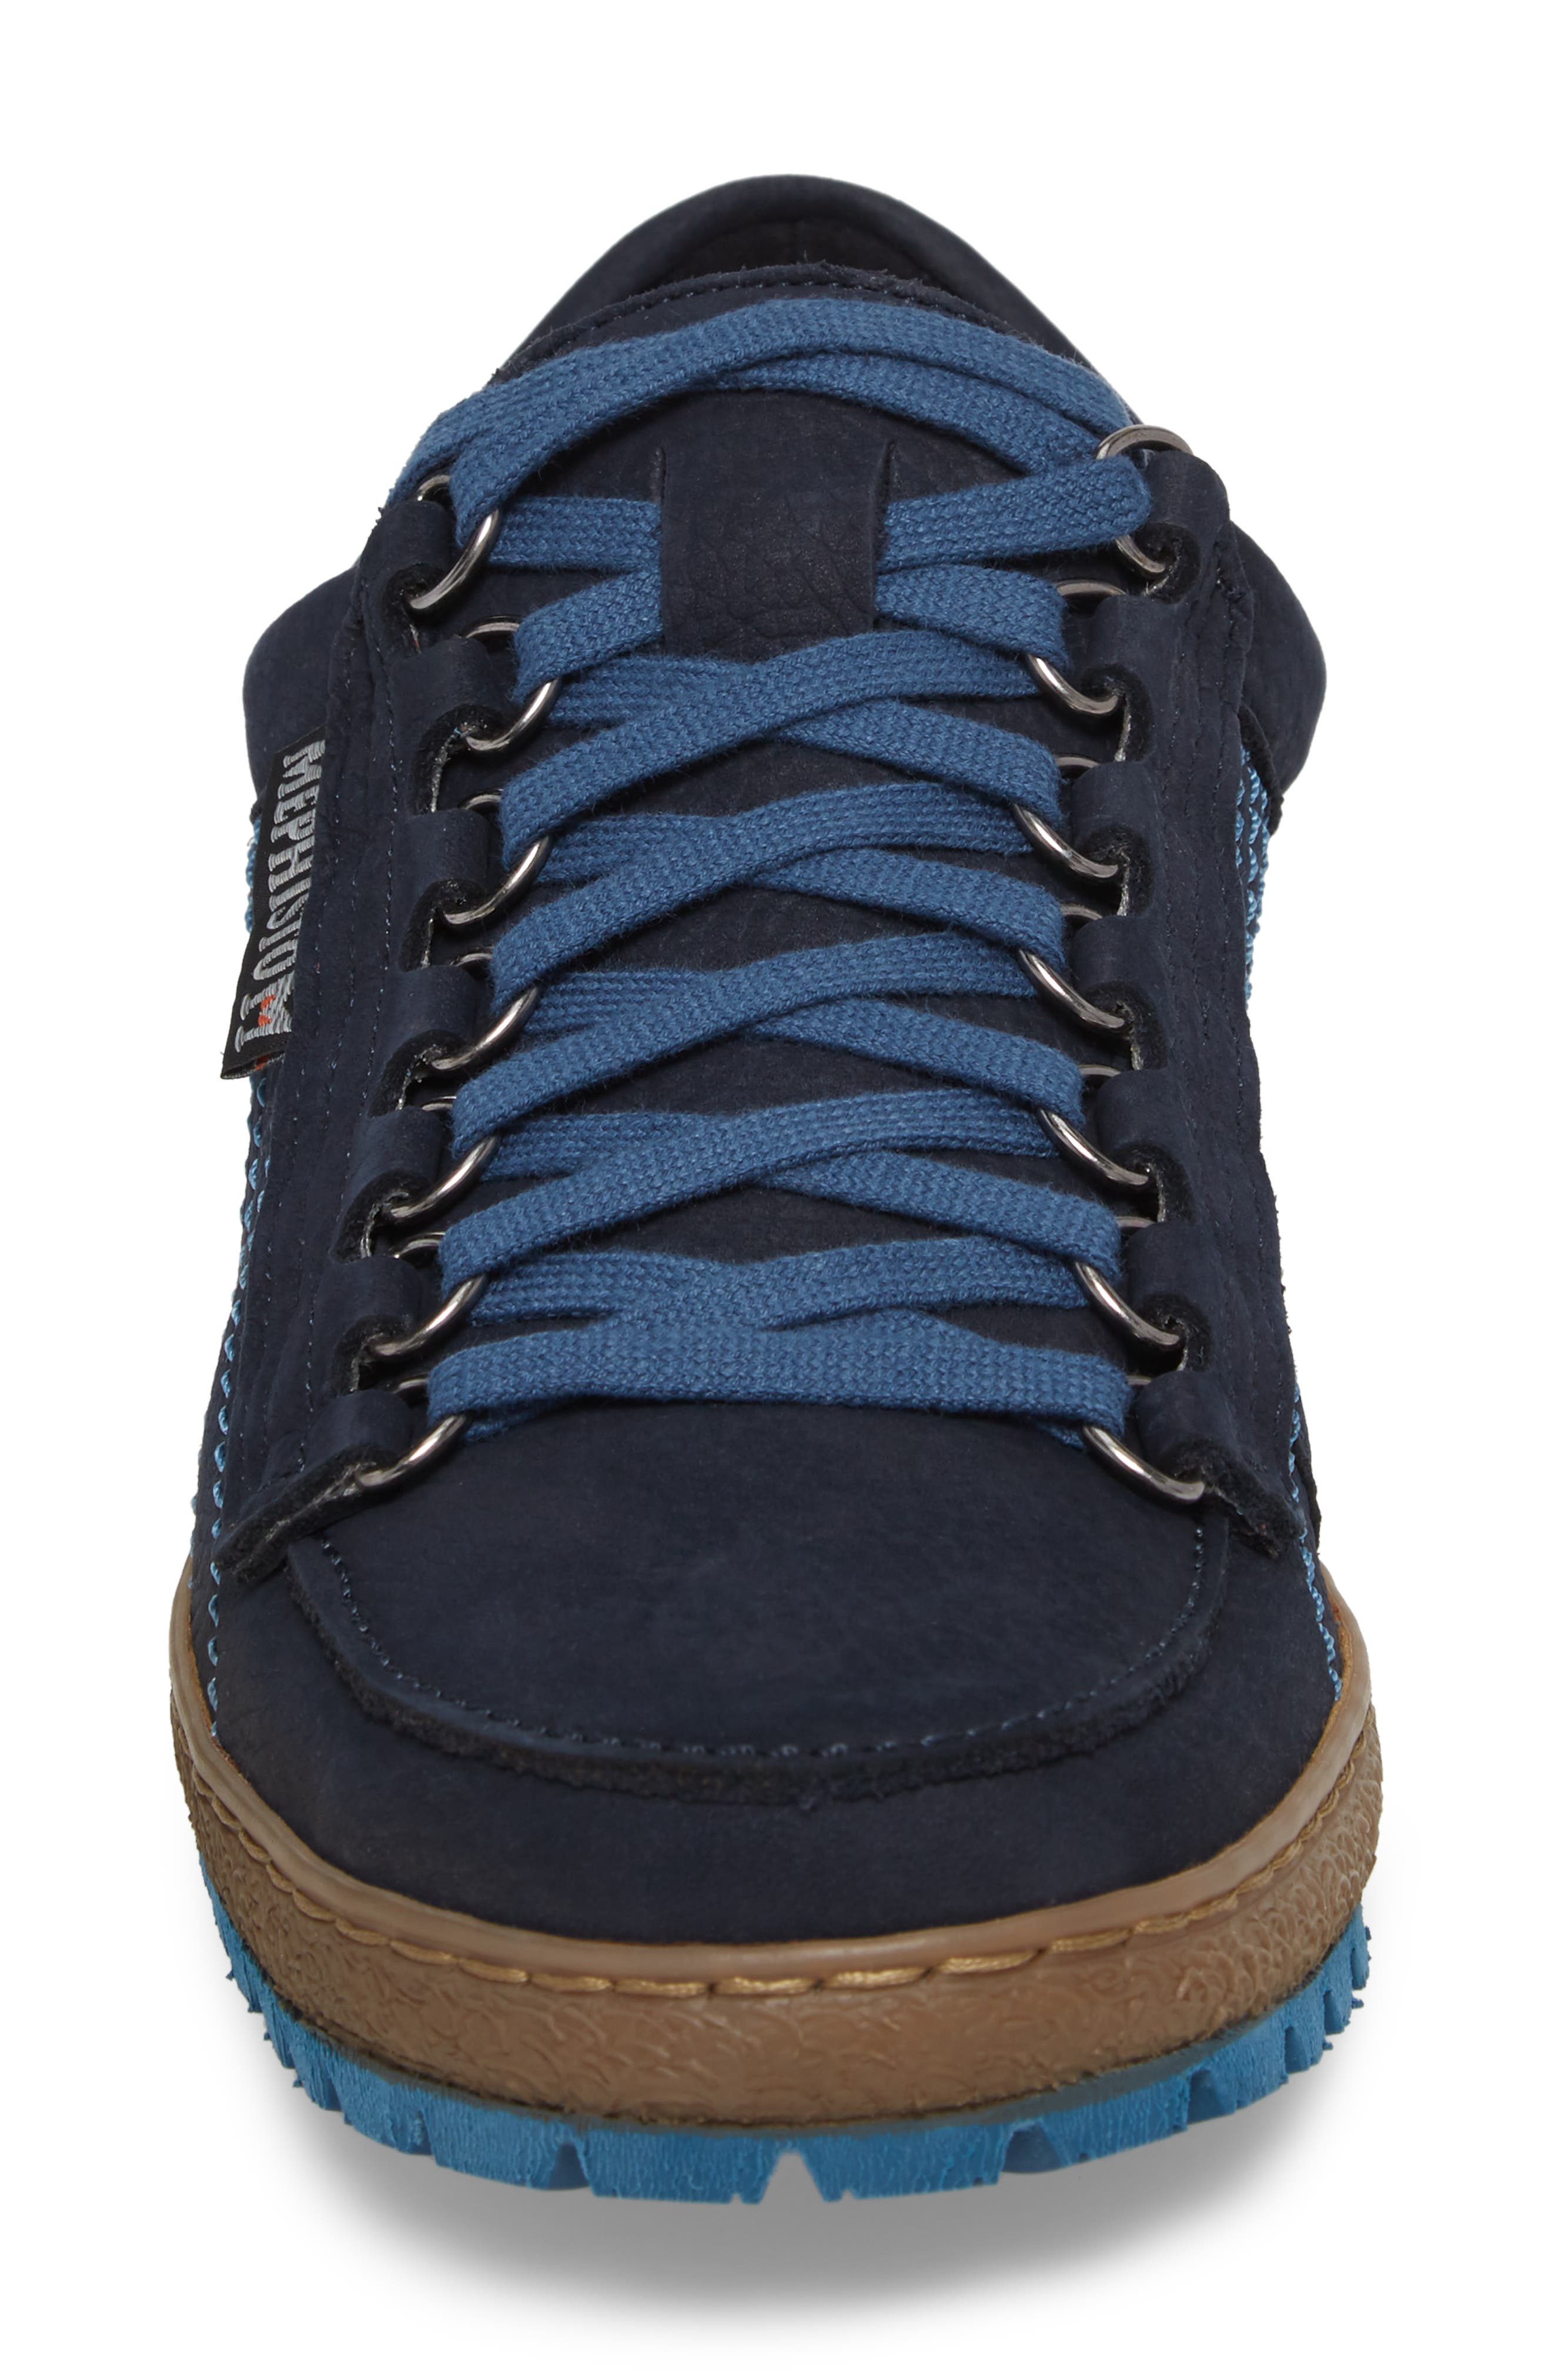 Rainbow Sneaker,                             Alternate thumbnail 4, color,                             NAVY BLUE SUEDE